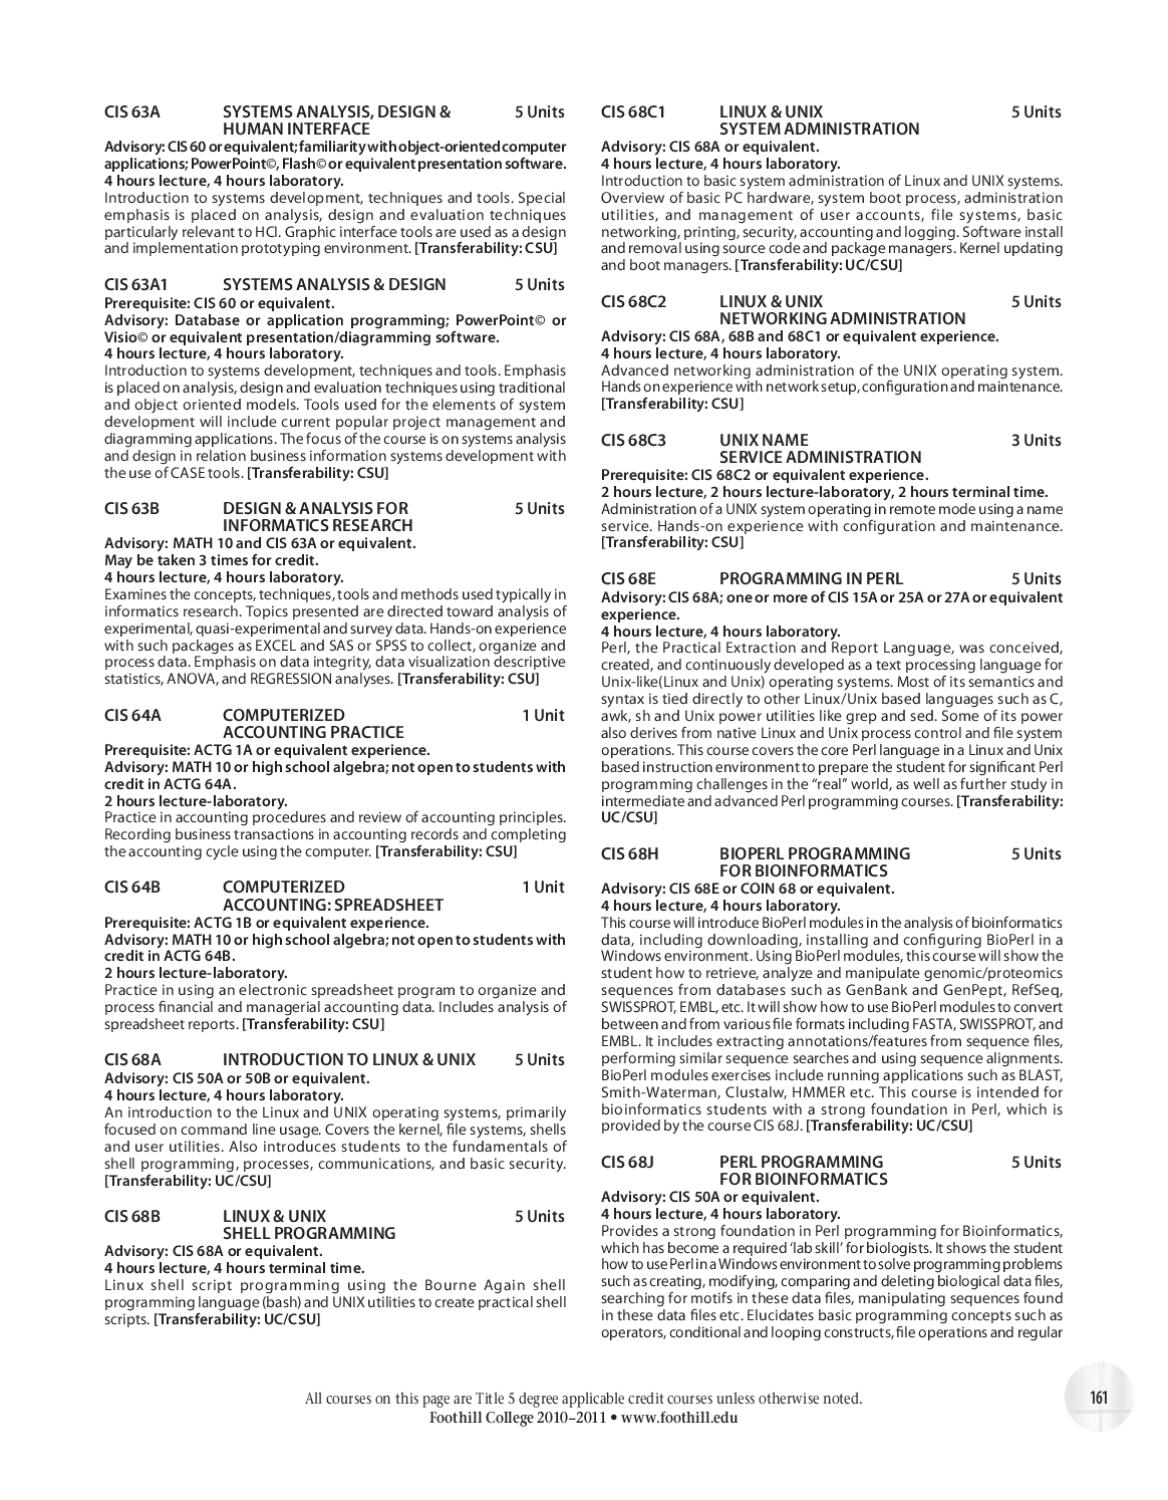 Foothill College 2010-2011 Course Catalog by Foothill